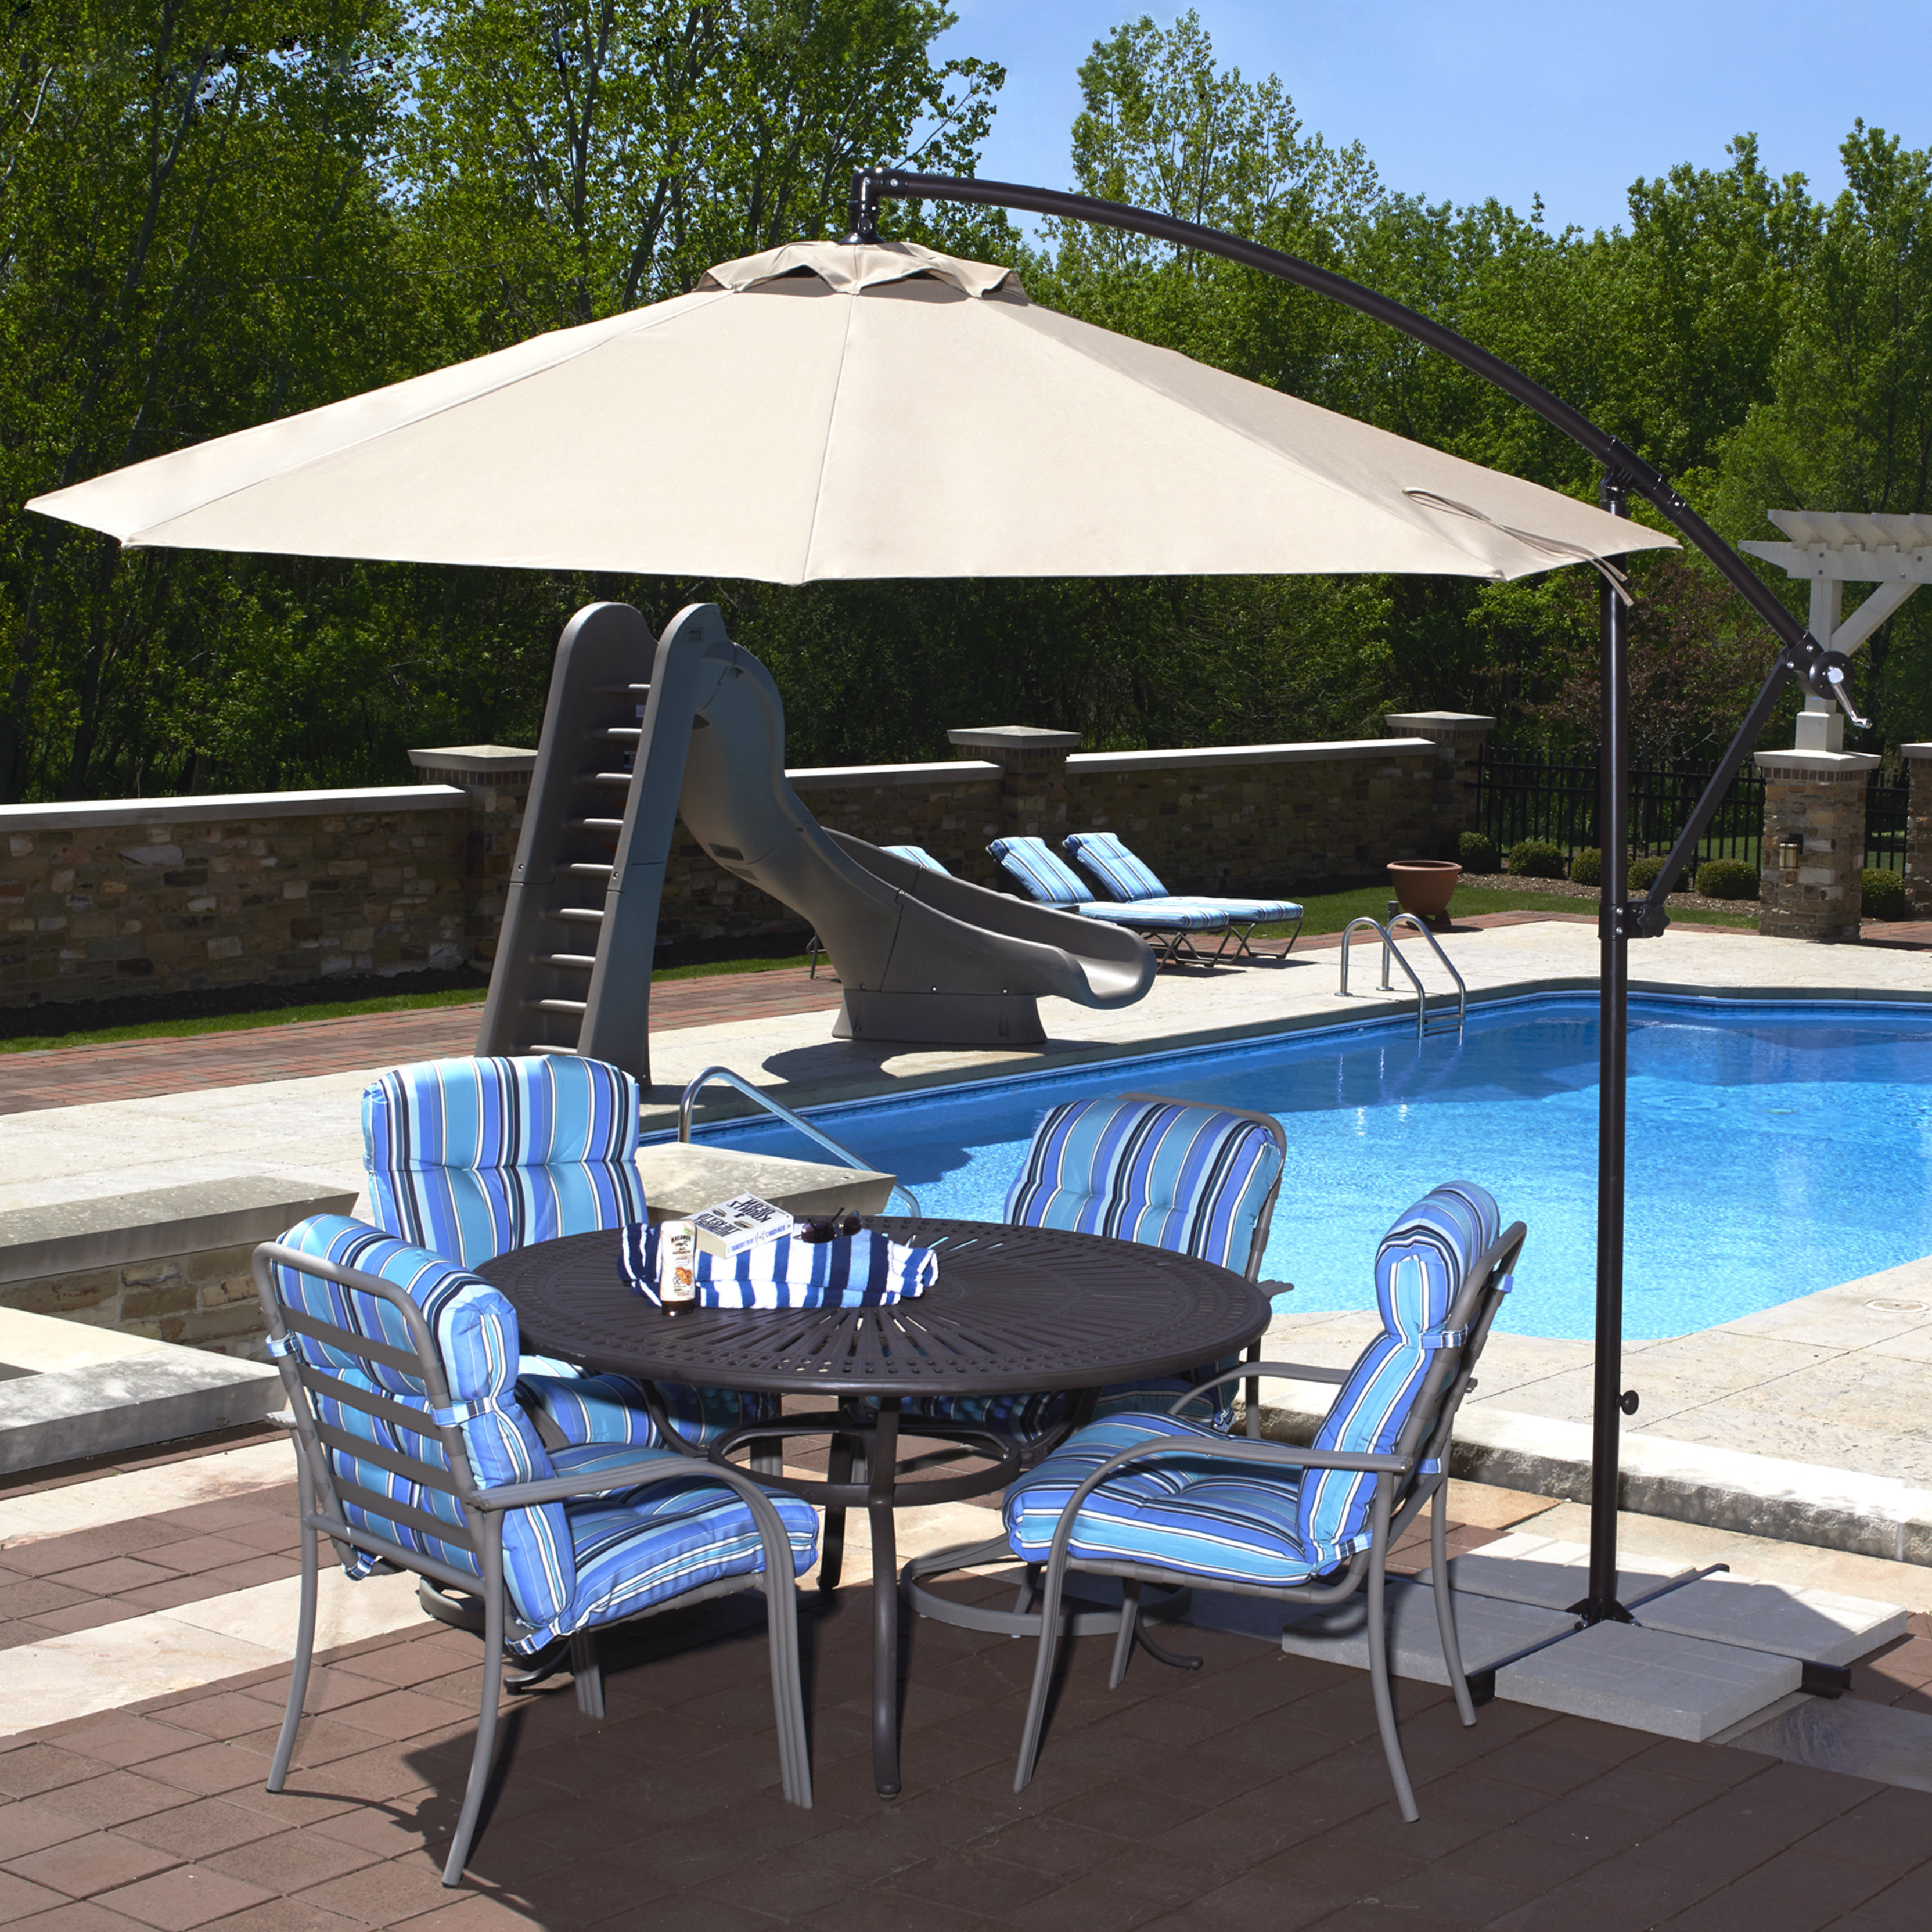 Ketcham 10' Cantilever Umbrella For Most Recent Cannock Market Umbrellas (Gallery 13 of 20)